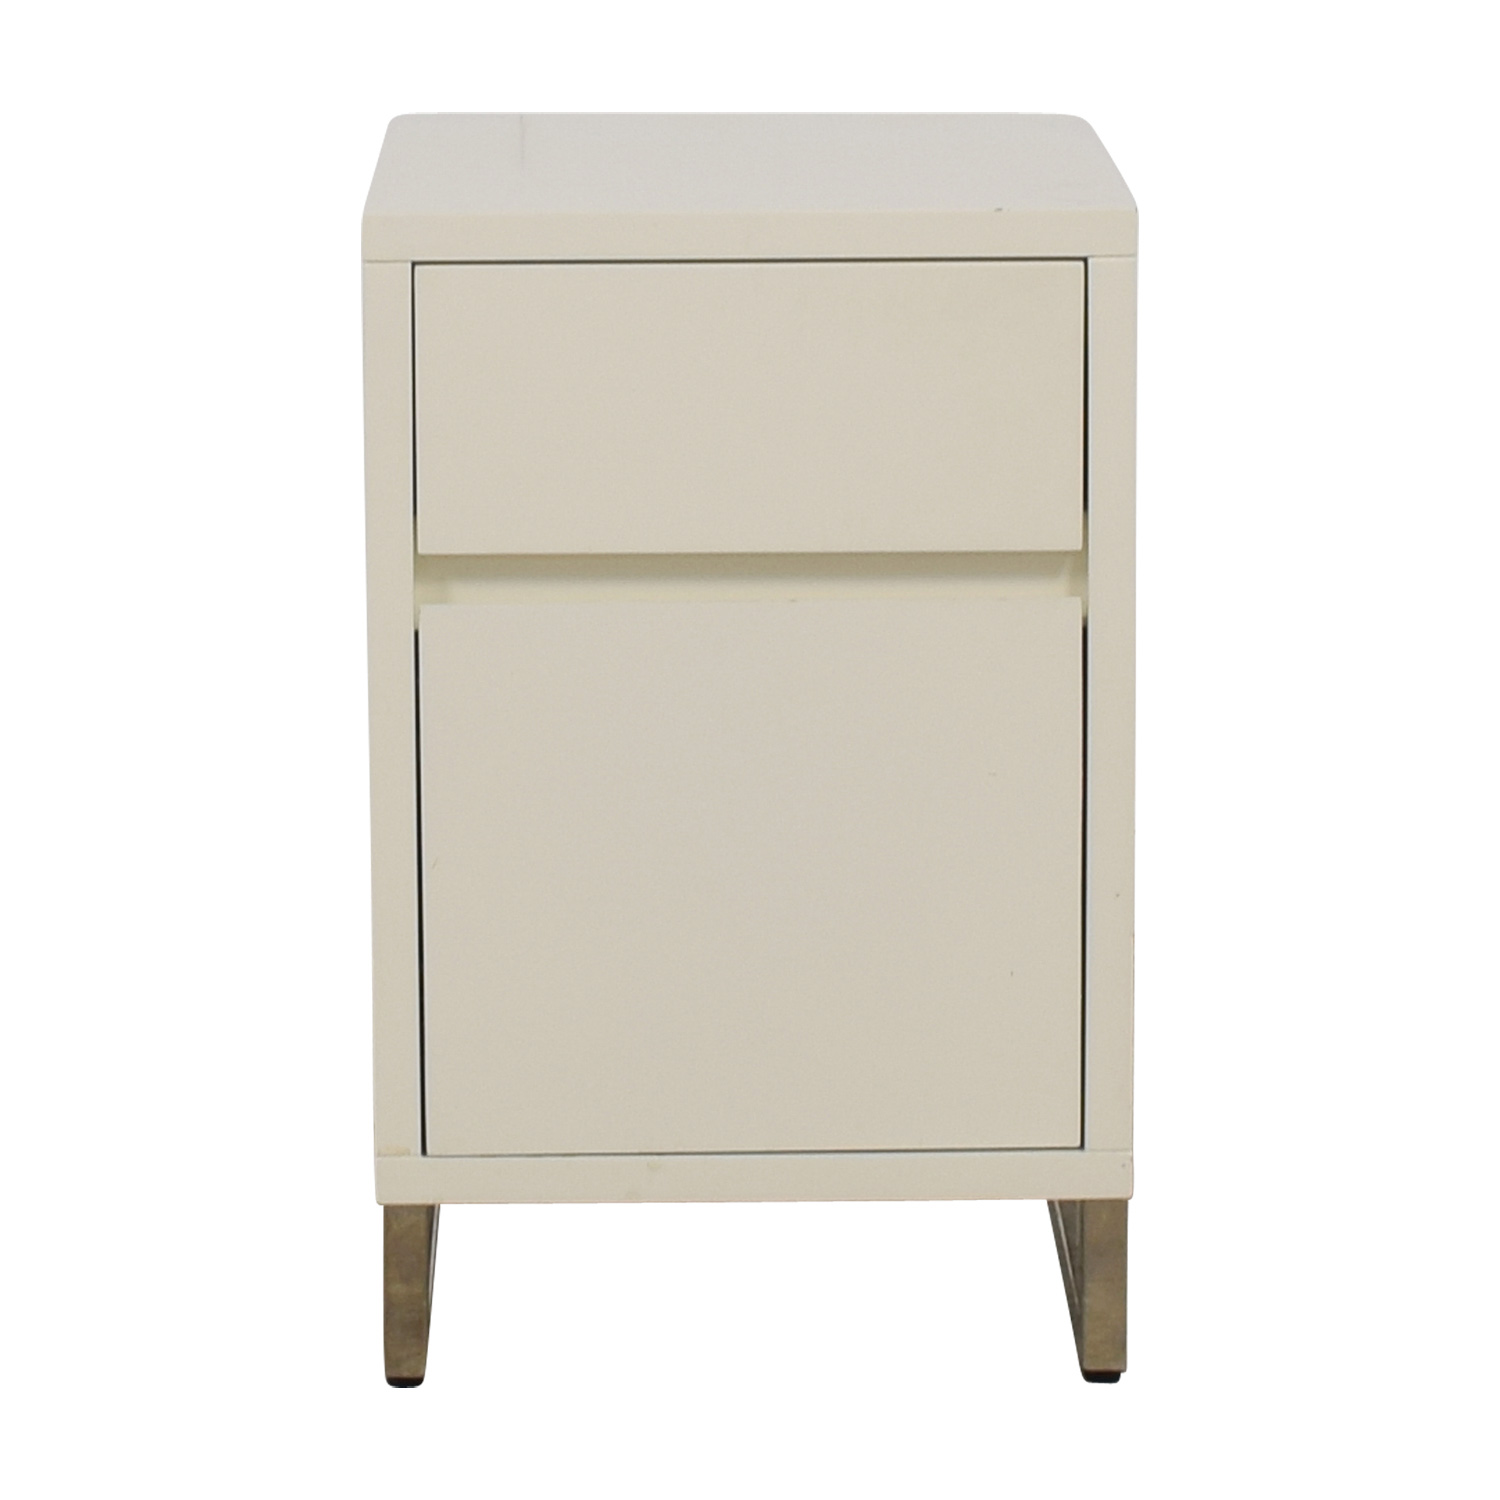 West Elm Single Drawer Nightstand with Storage / End Tables